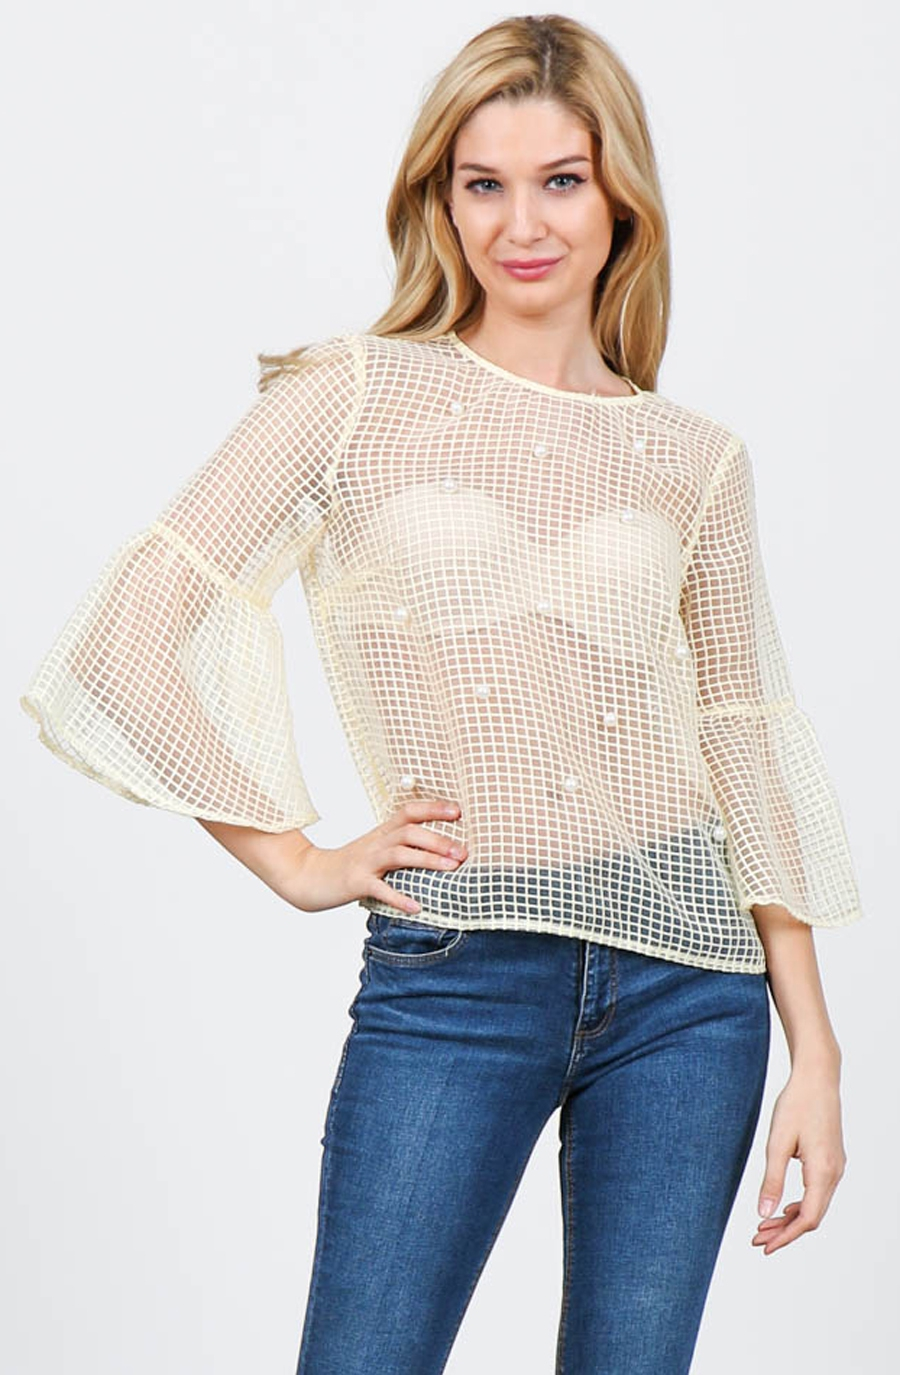 Sheer Pearl Embellished Top with Qua - orangeshine.com